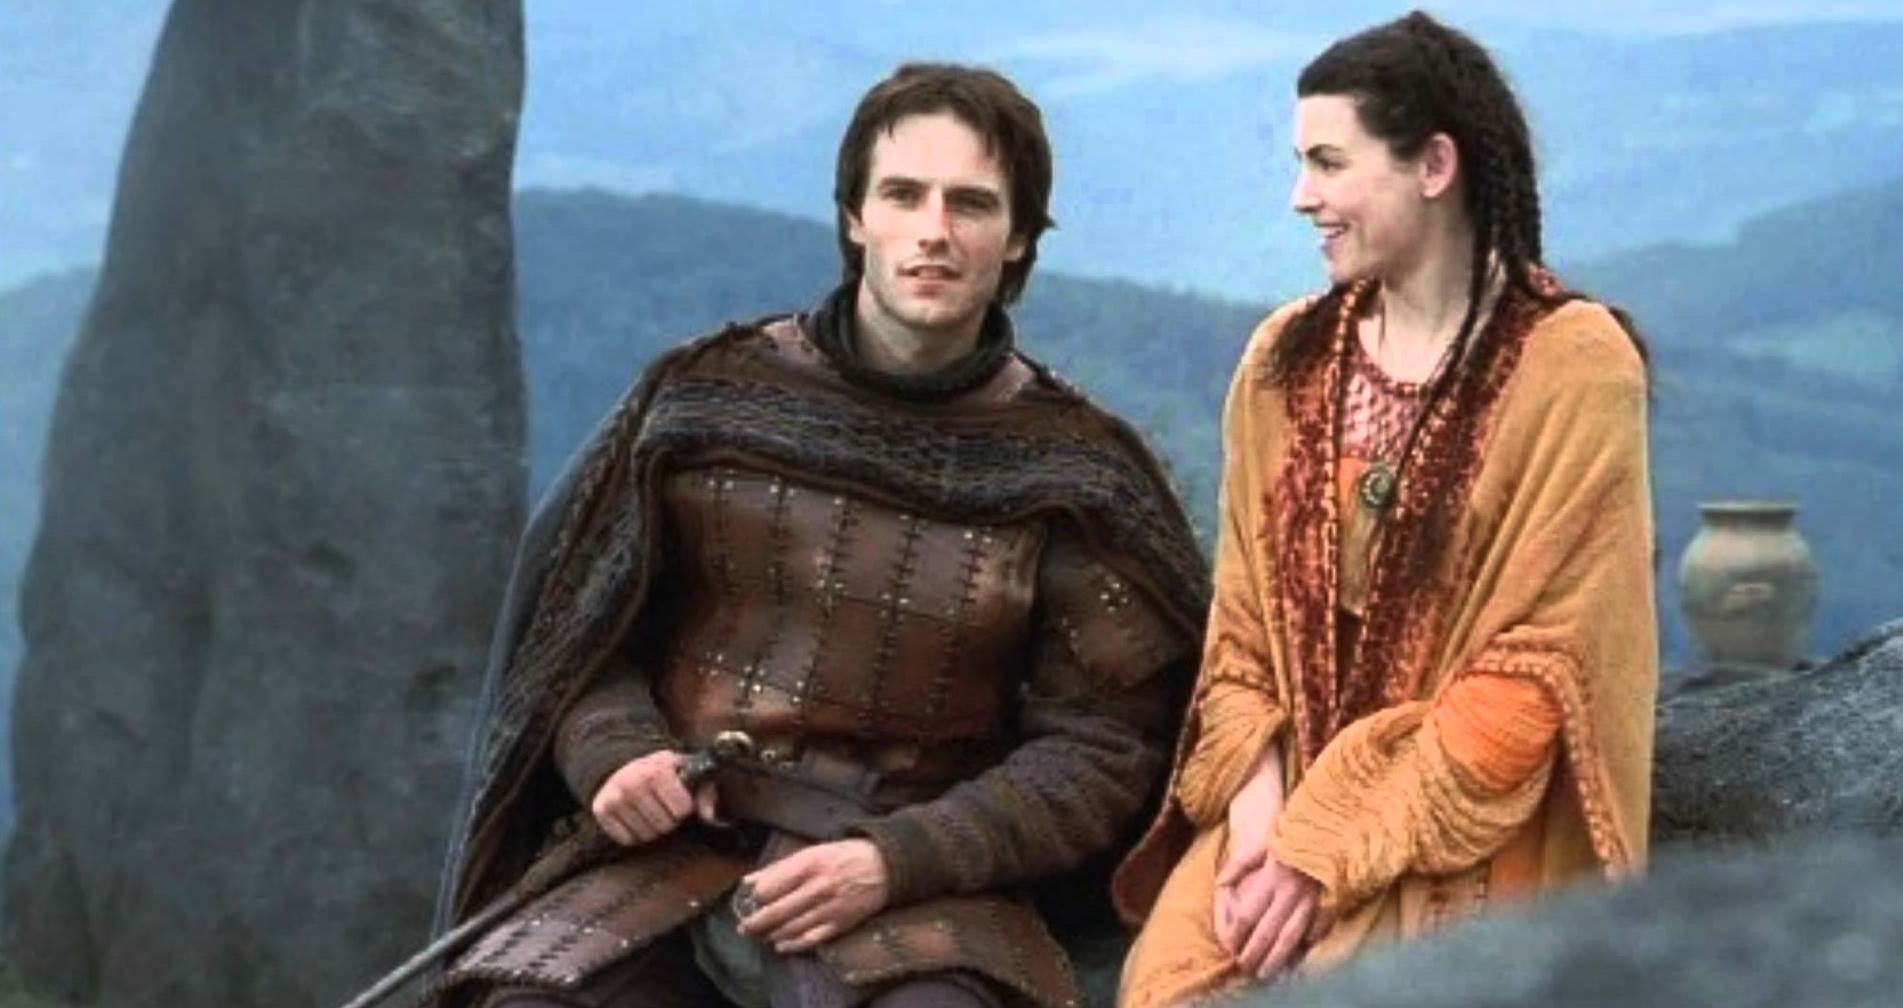 Lancelot (Michael Vartan) and Morgaine (Julianna Margulies) in The Mists of Avalon (2001)